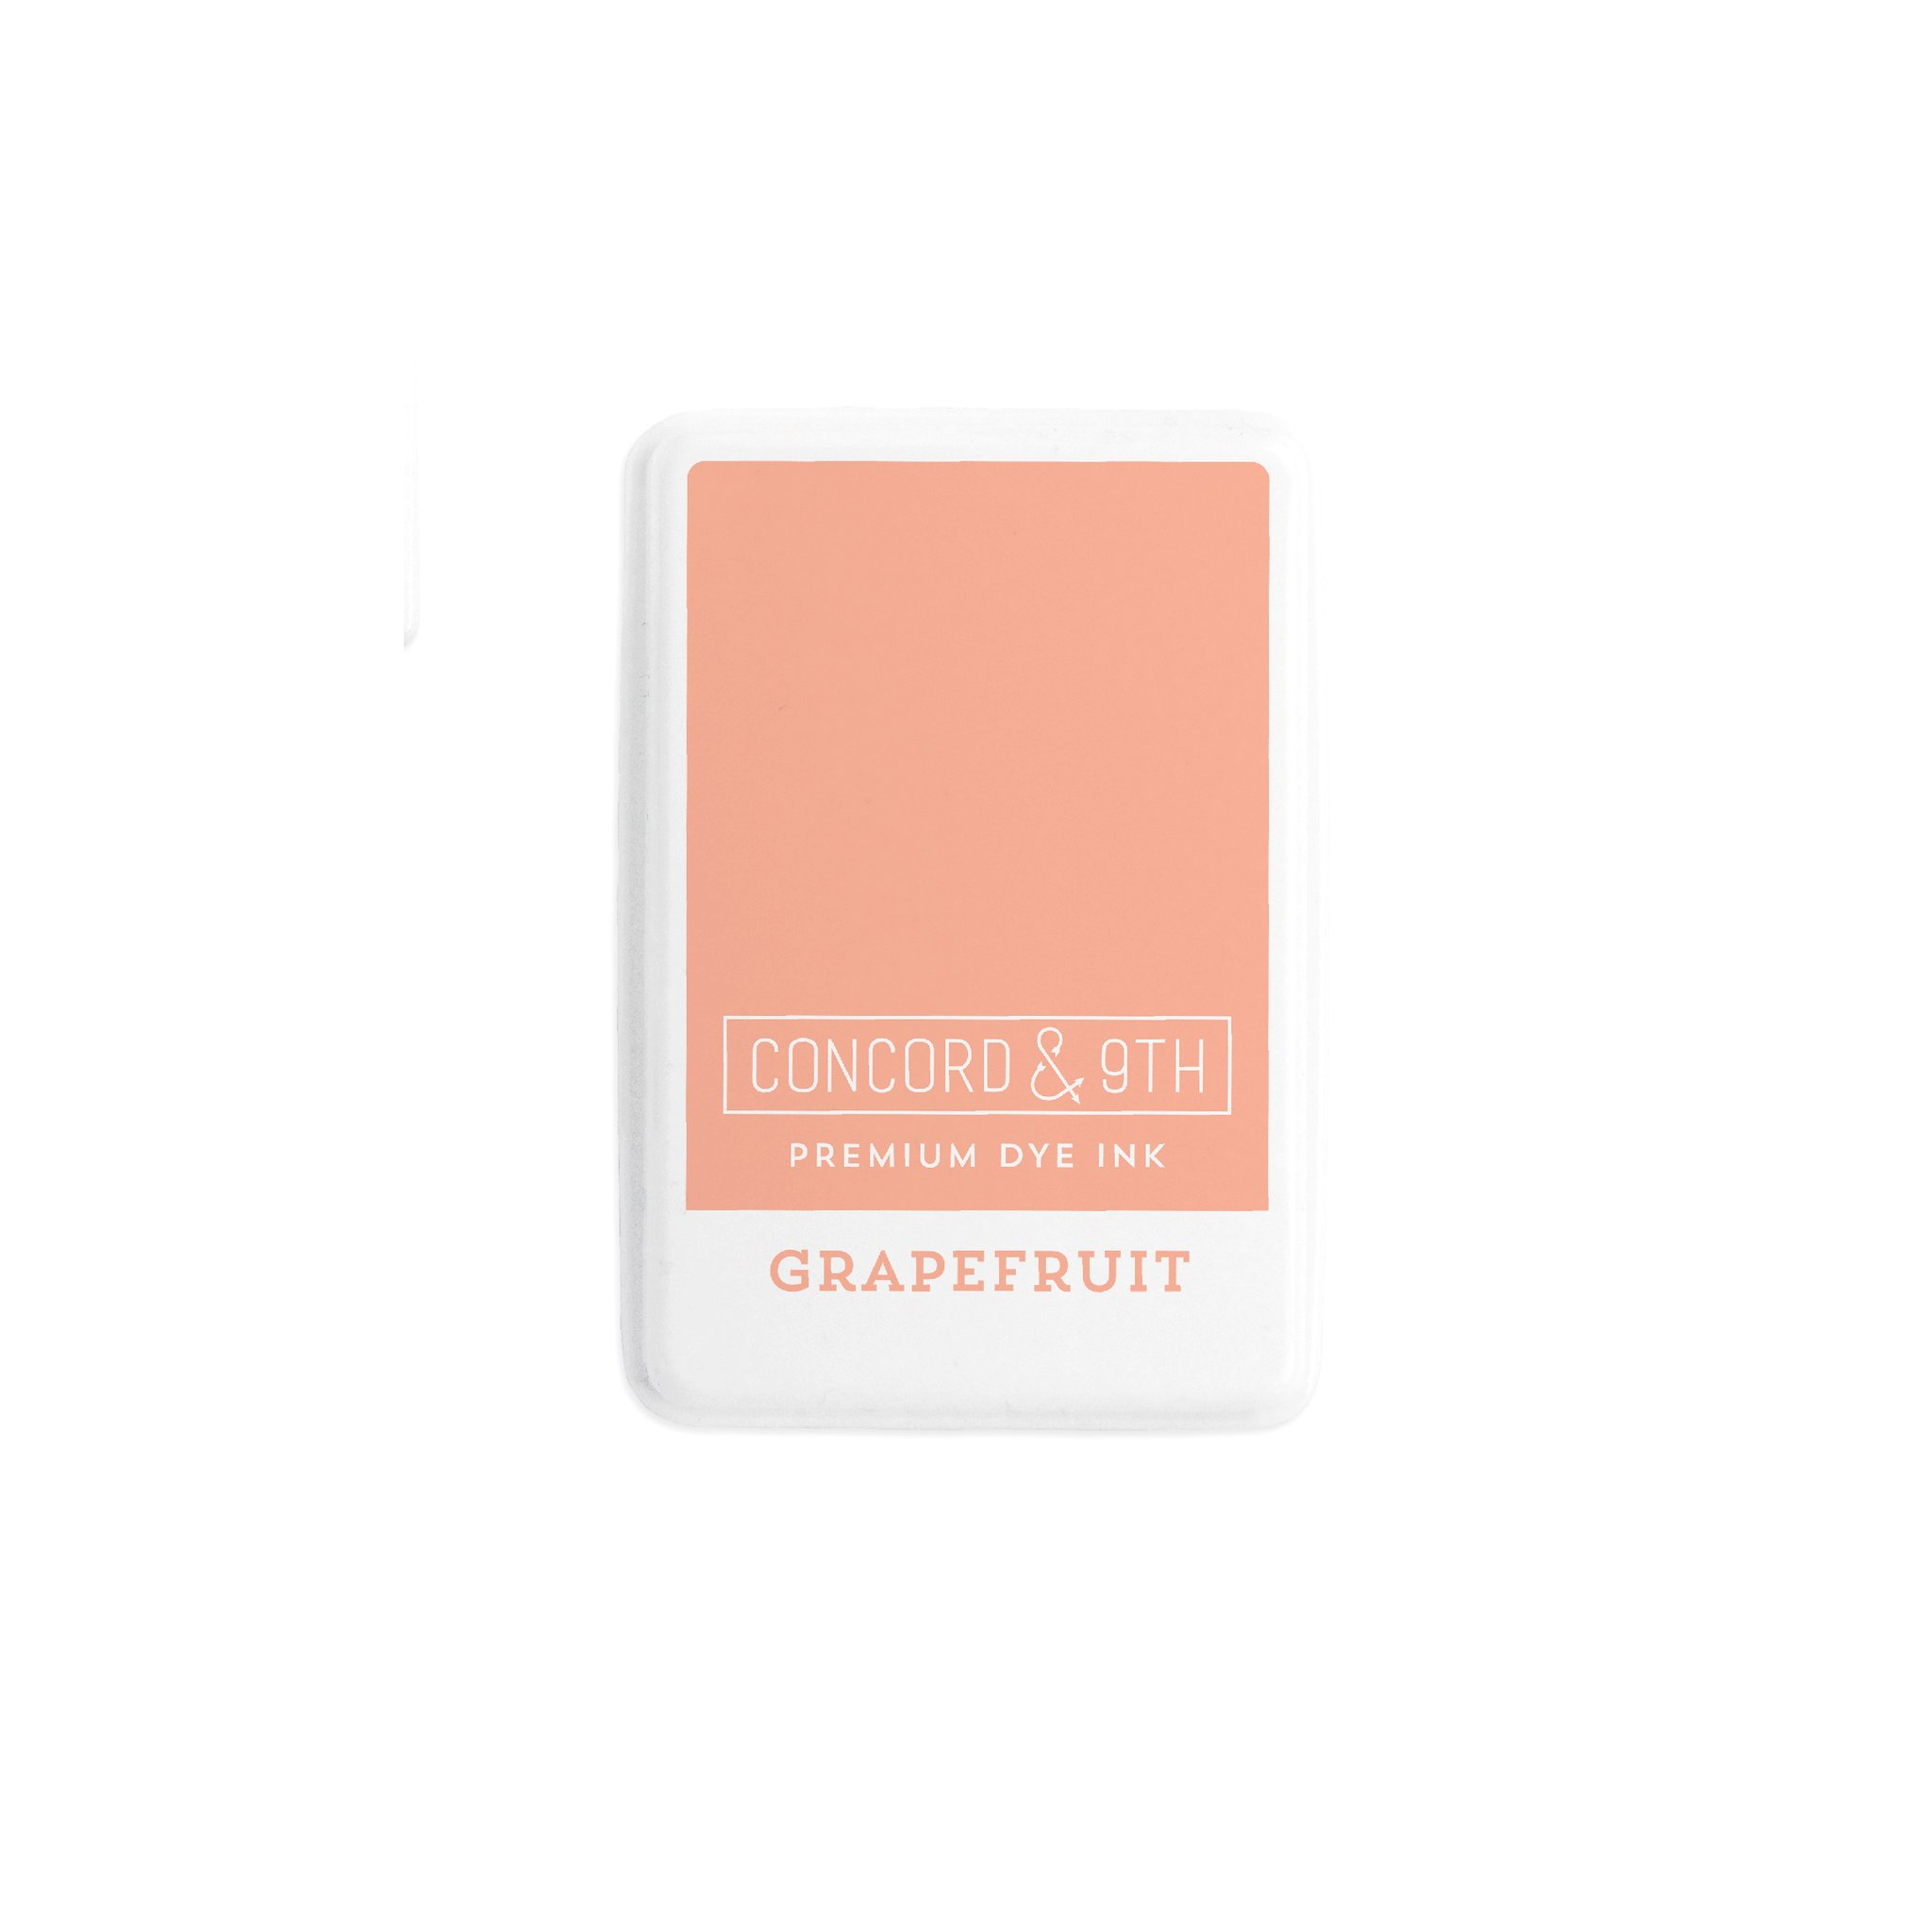 *NEW* - Concord & 9th - GRAPEFRUIT INK PAD